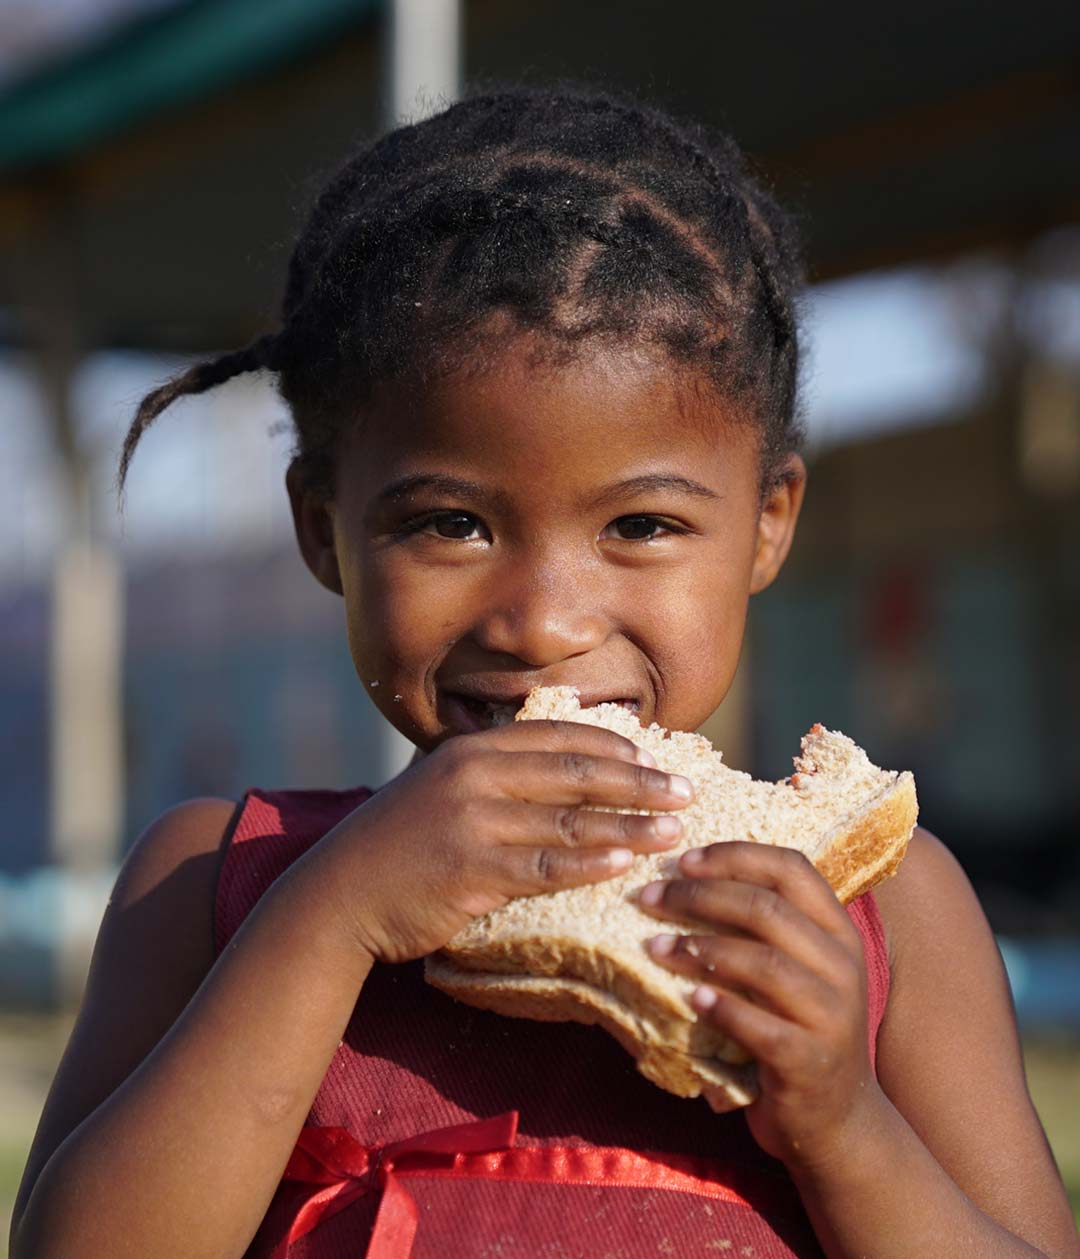 Close up of smiling young girl eating a sandwich provided to her by Ladles of Love